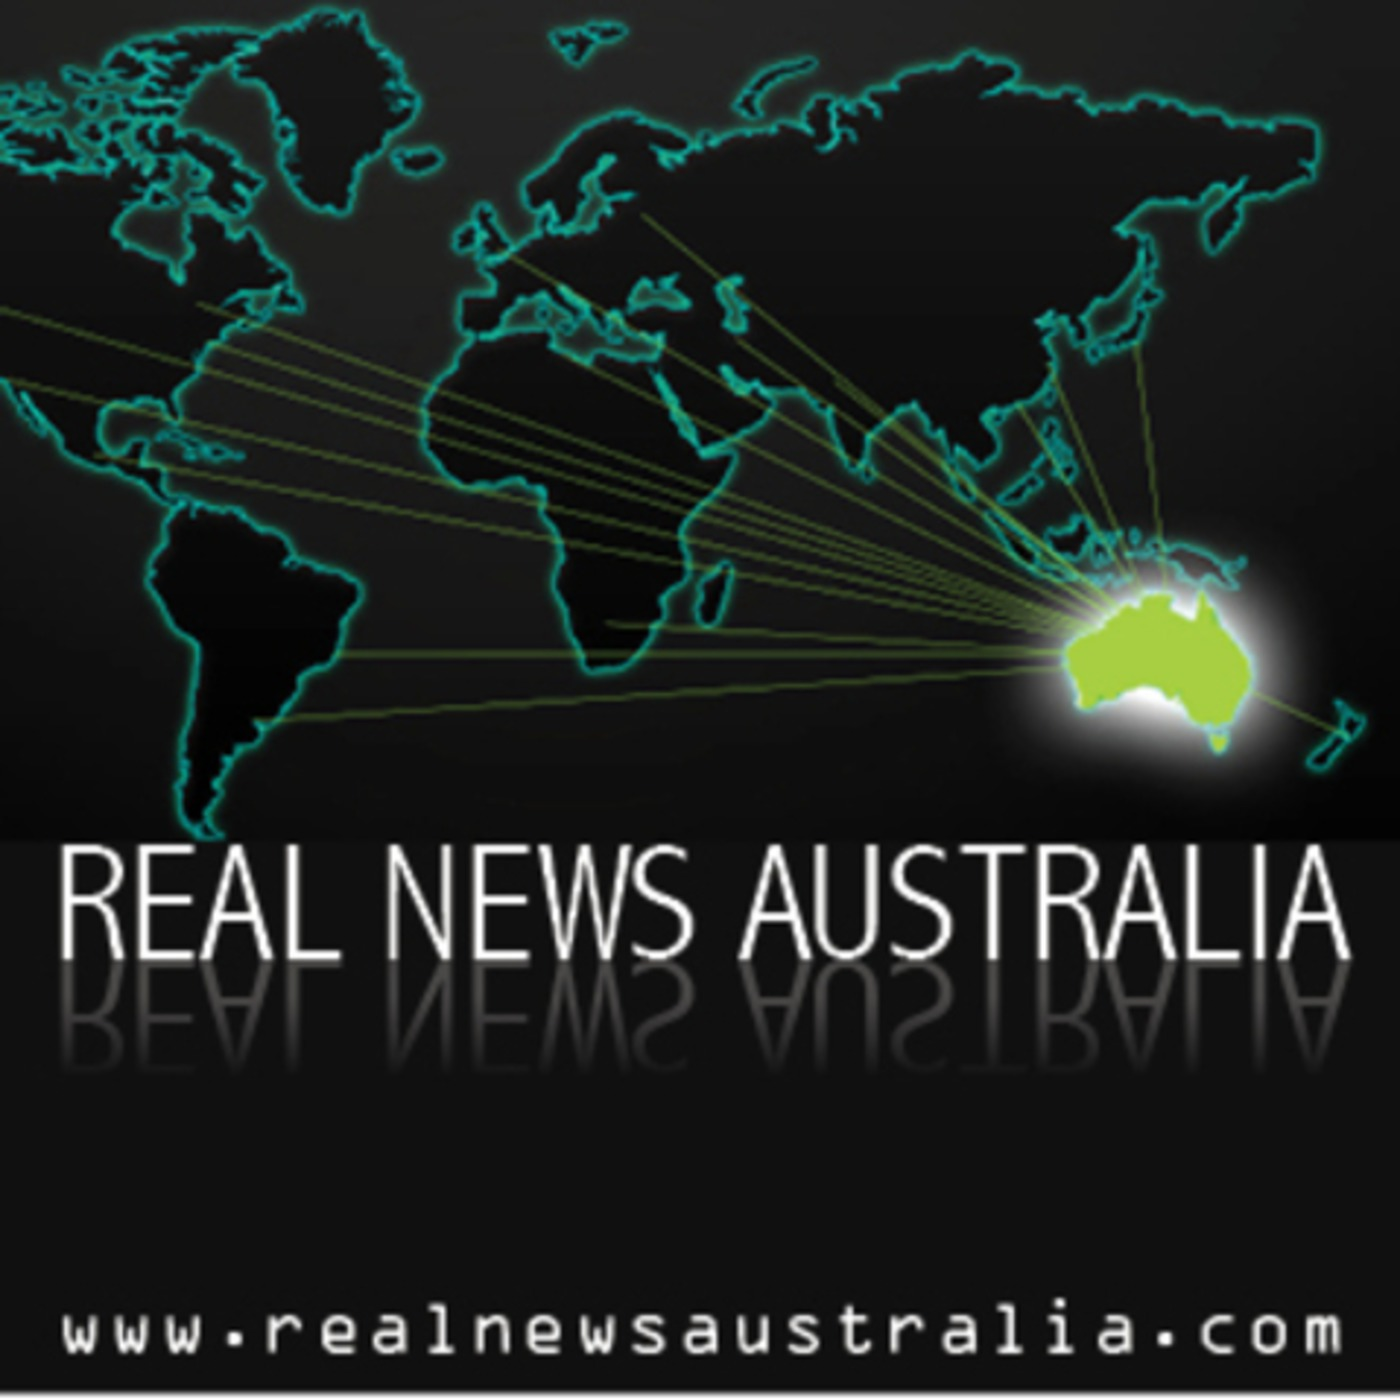 Real News Australia-General Knowledge